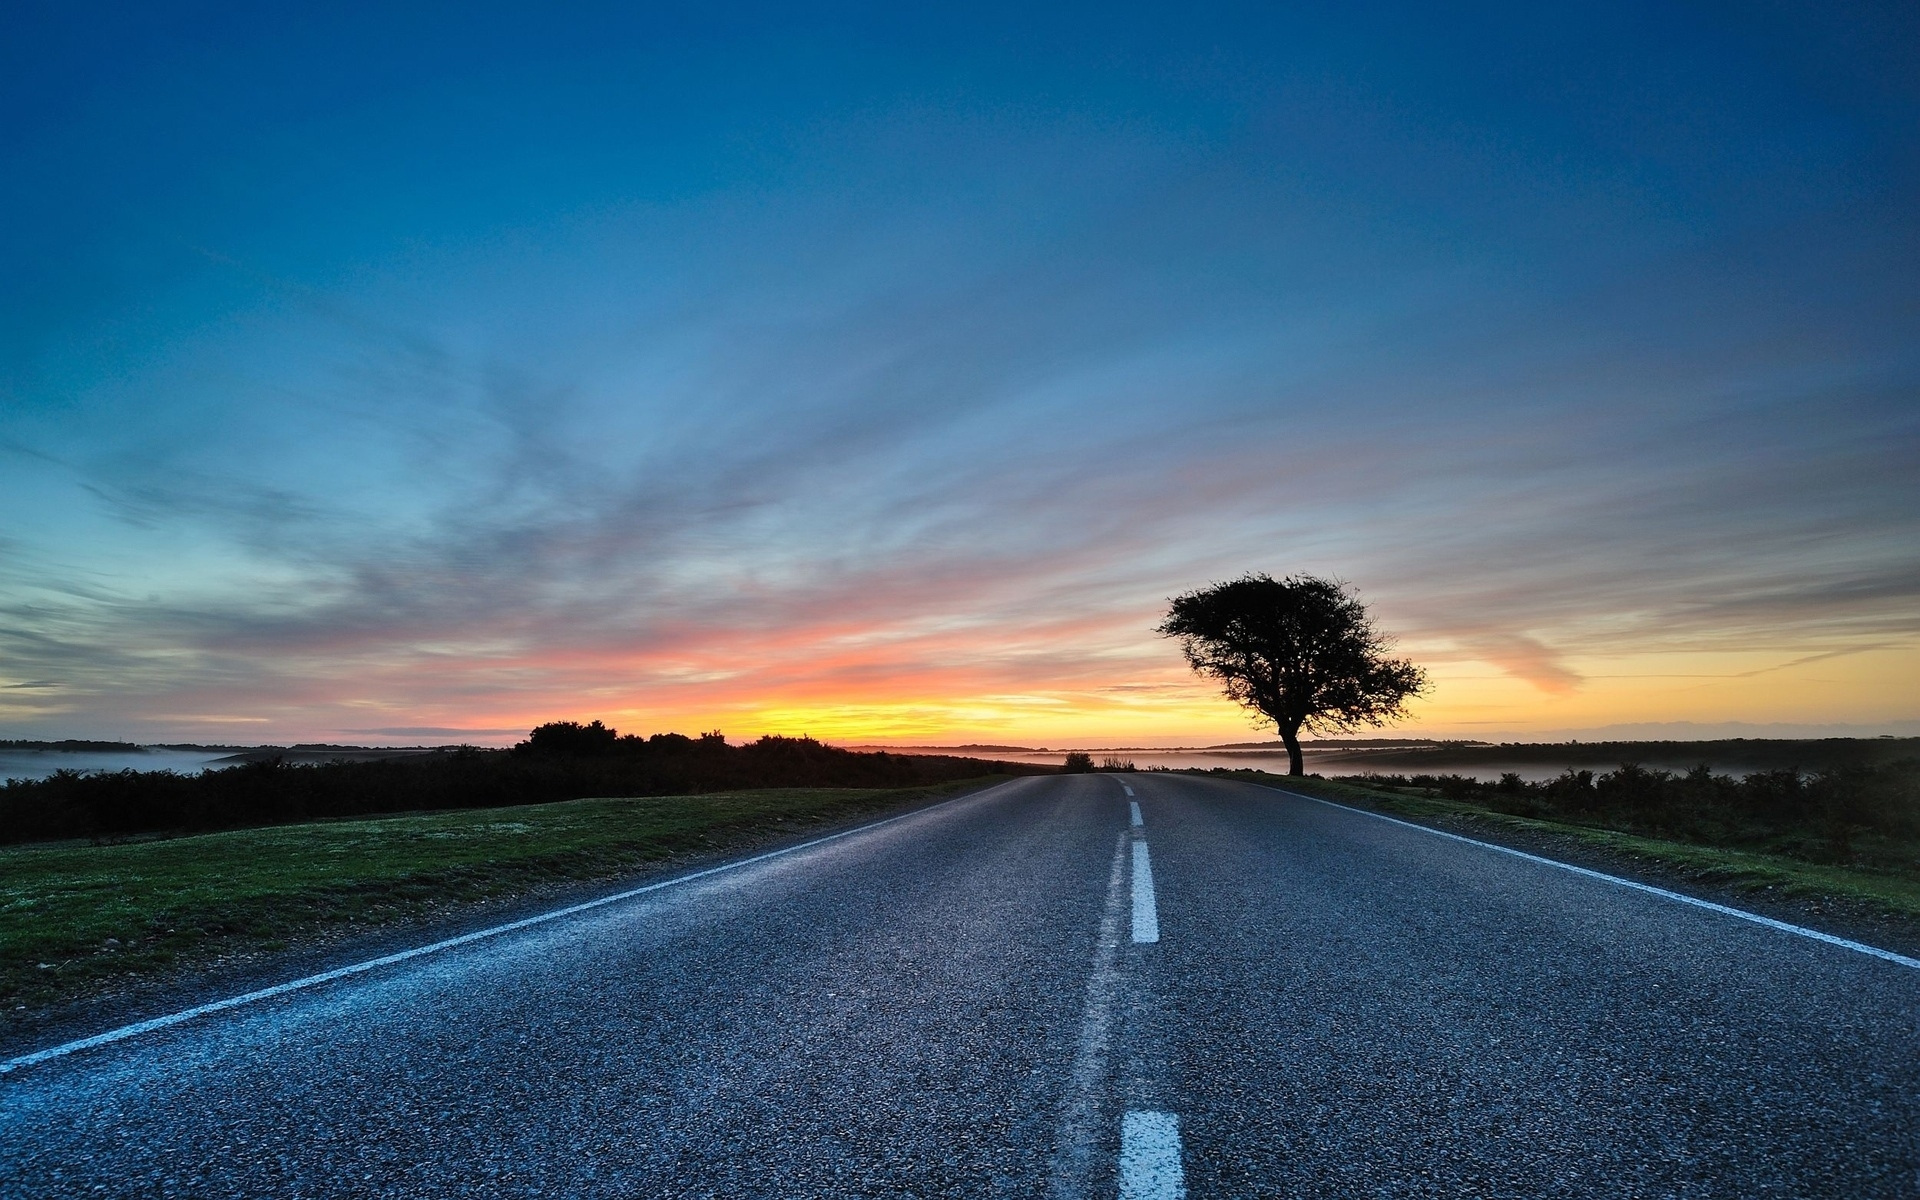 sunset road horizon amp scenic wallpapers sunset road